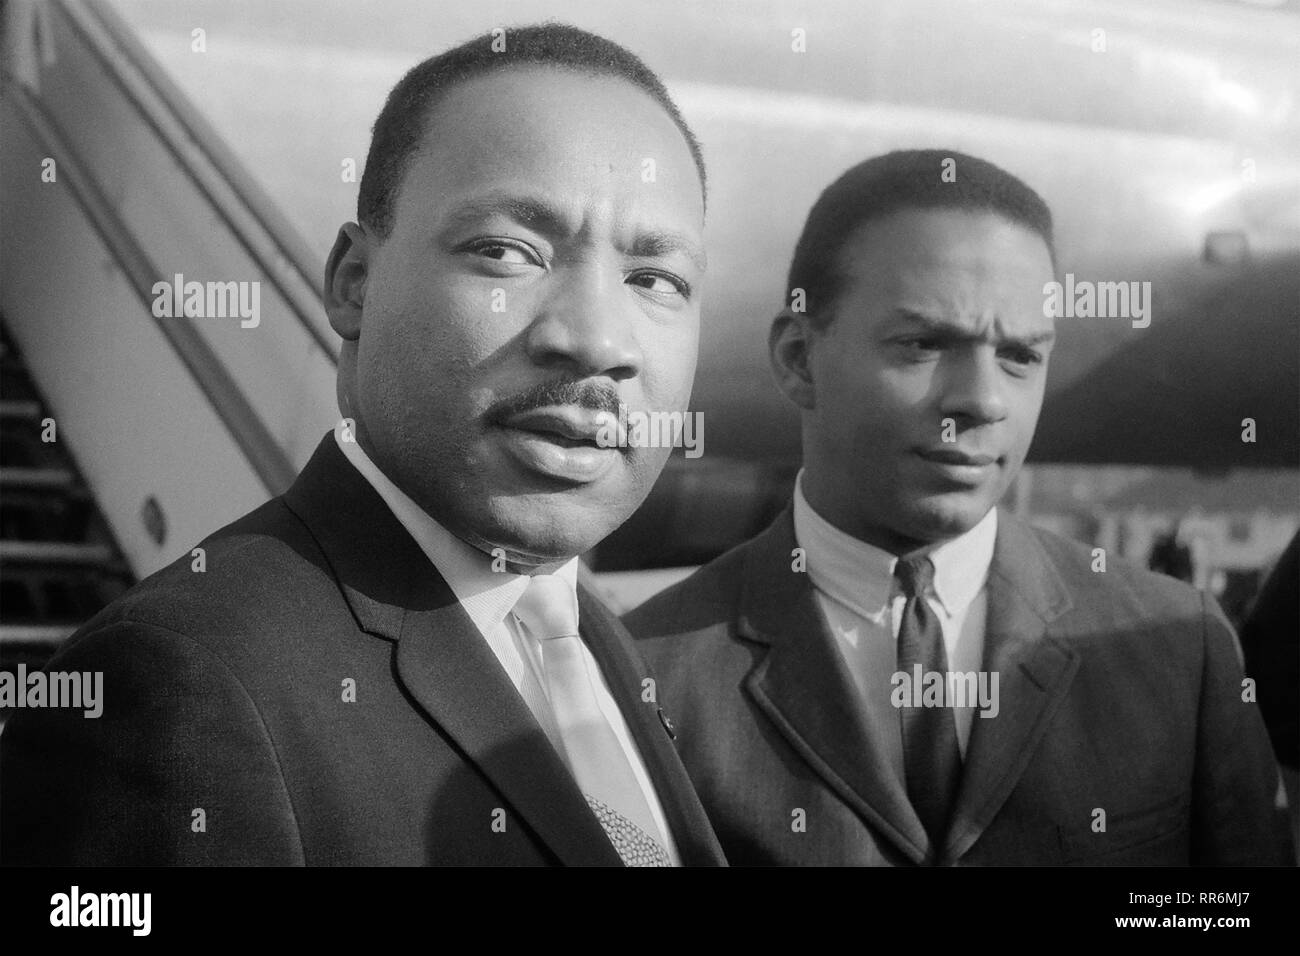 Martin Luther King, Jr. and Andrew Young arriving at Schiphol Airport in Amsterdam, North Holland on August 15, 1964. King had traveled to the Netherlands to speak at the European Baptist Federation Congress at the RAI convention center on Sunday, August 16 in Amsterdam. - Stock Image